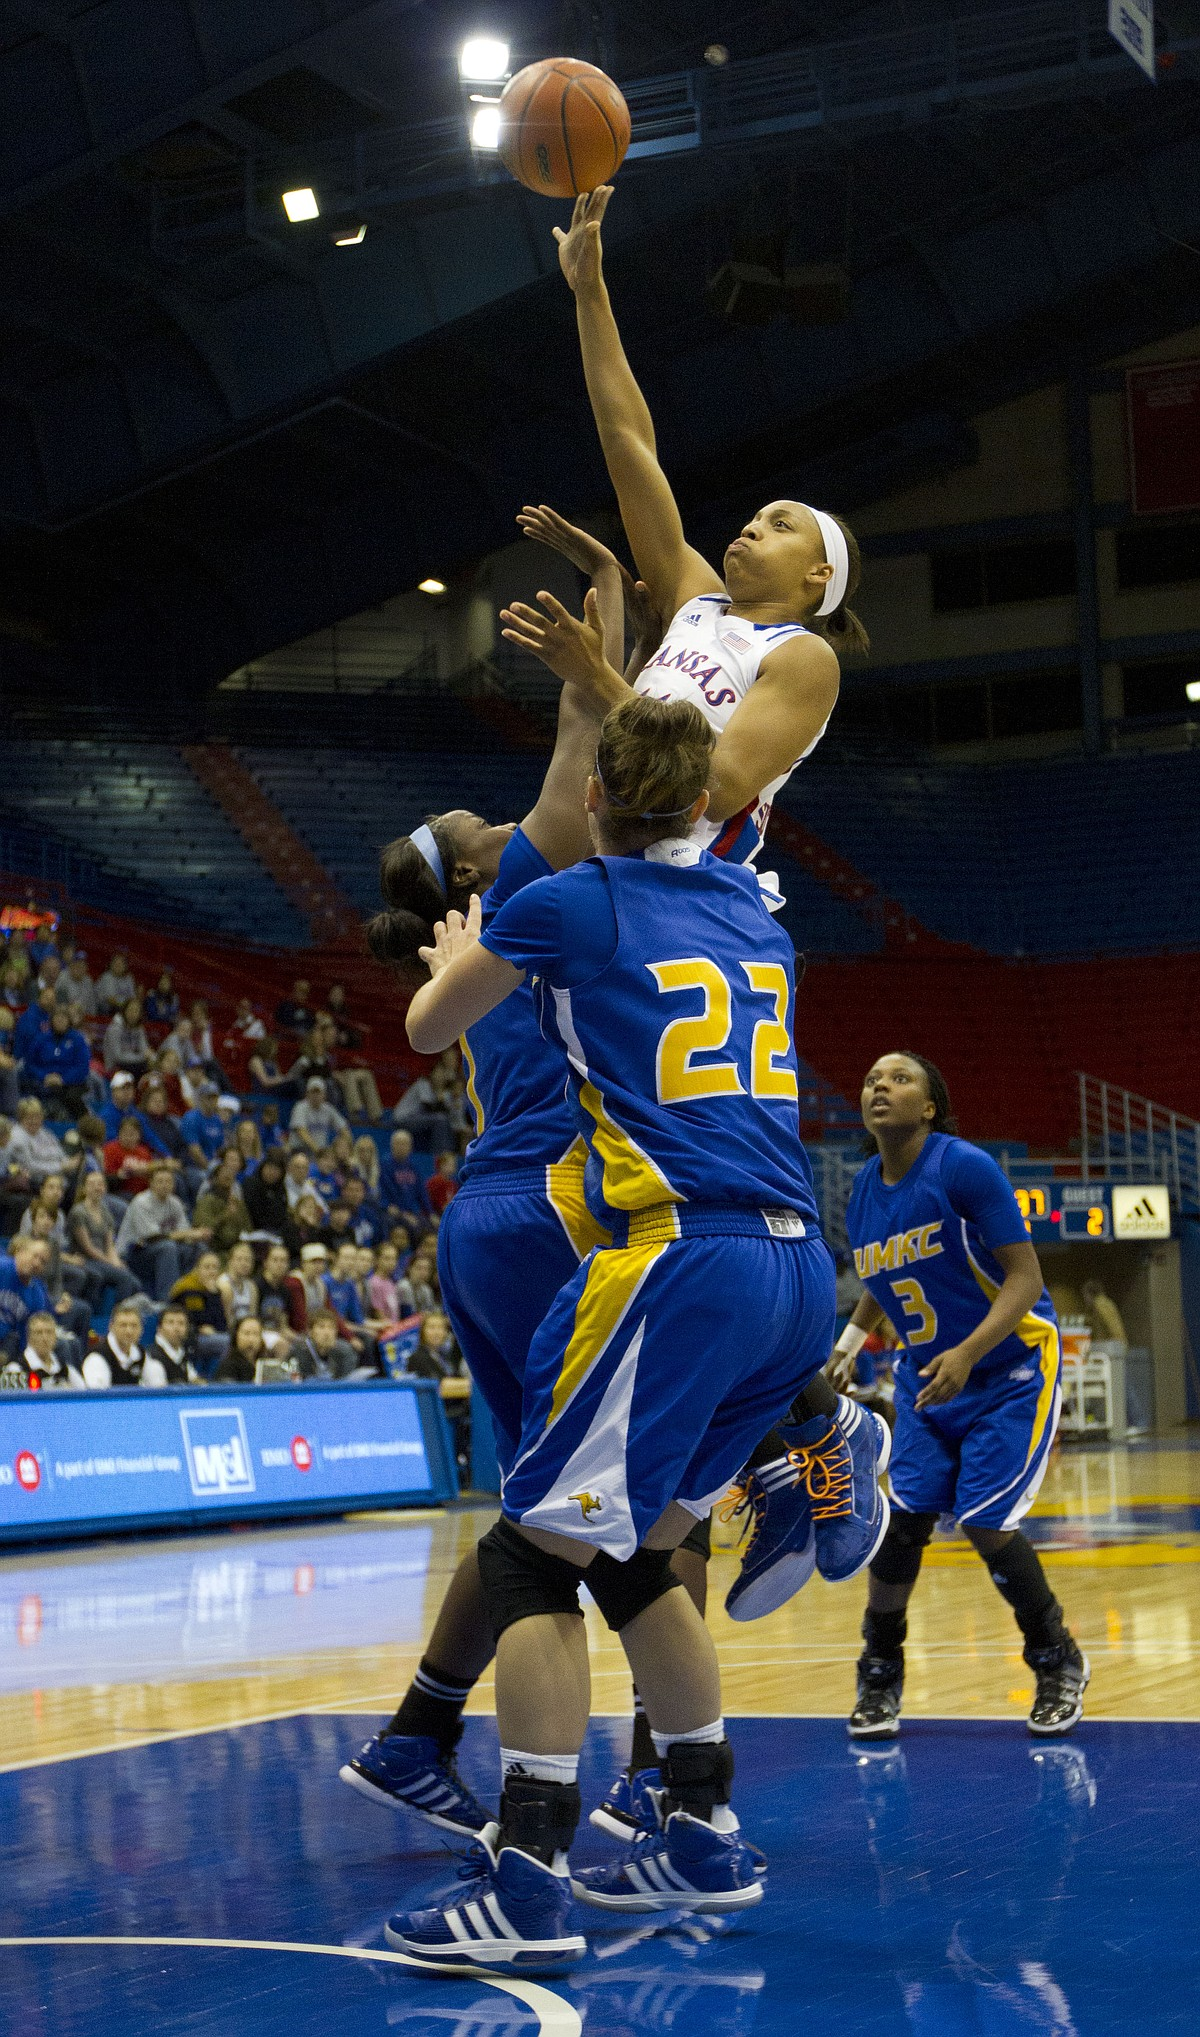 KU women's basketball vs. UMKC / LJWorld.com